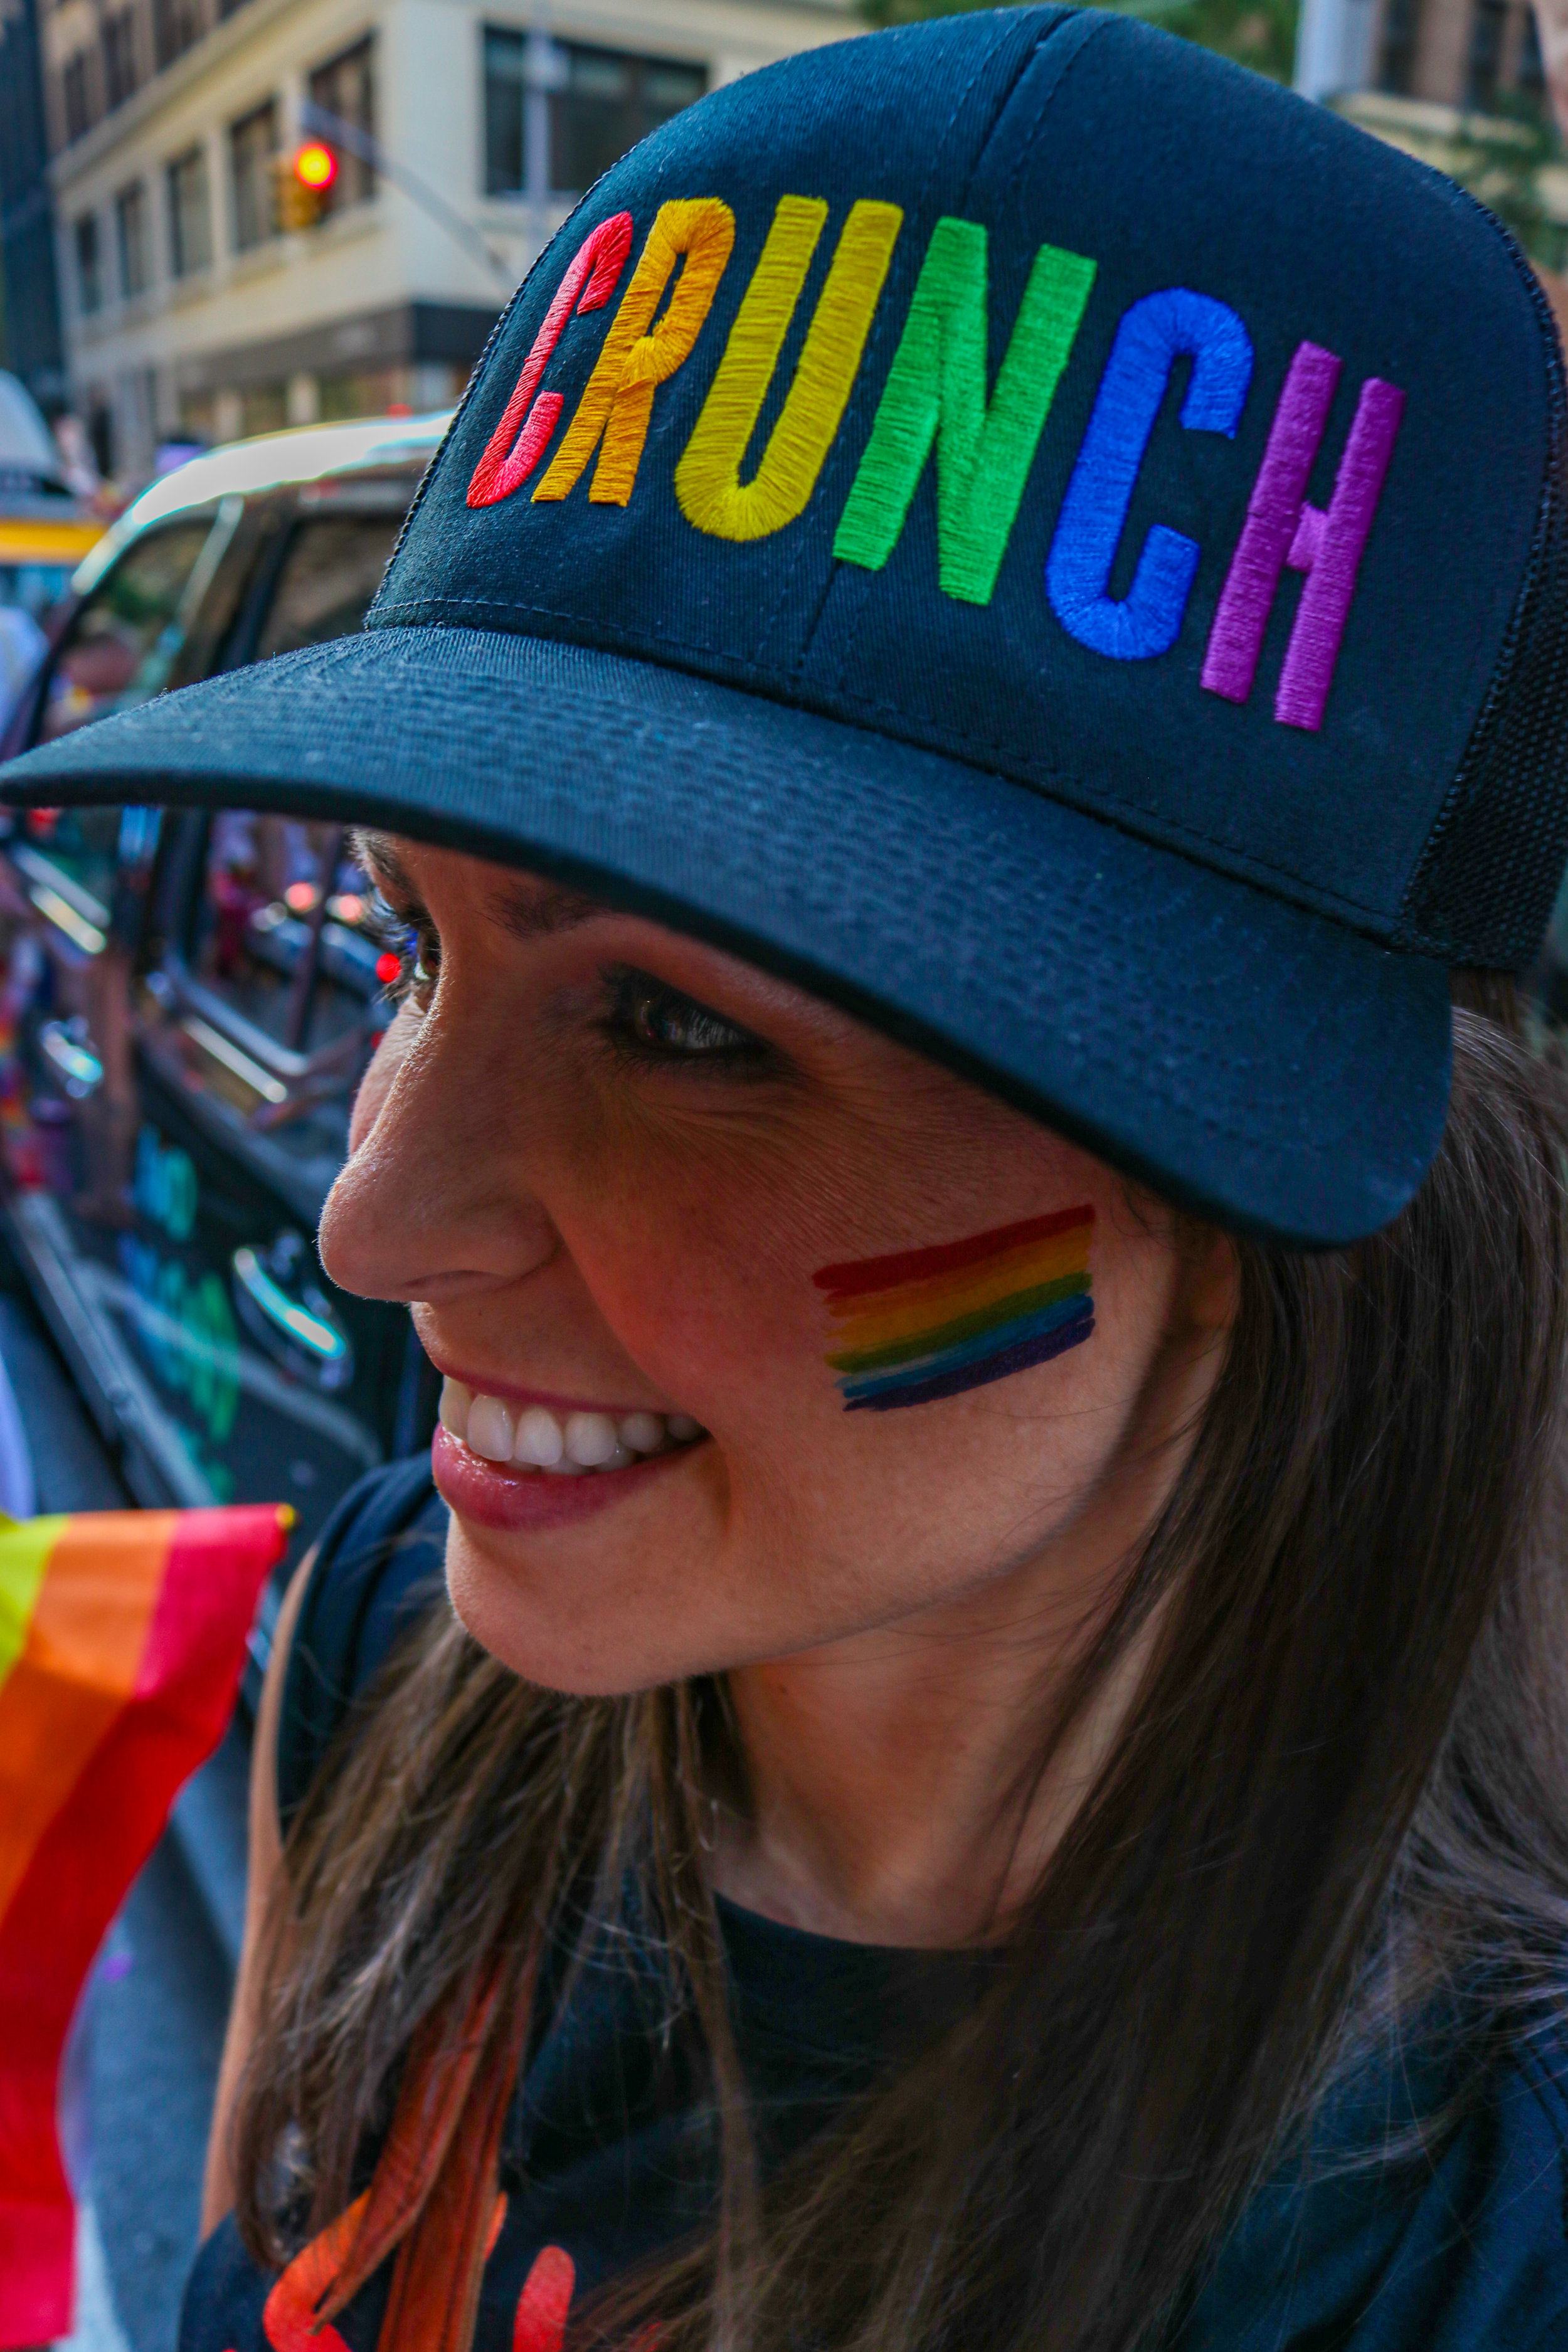 Crunch Fitness instructor at the 2019 NYC Pride Parade.